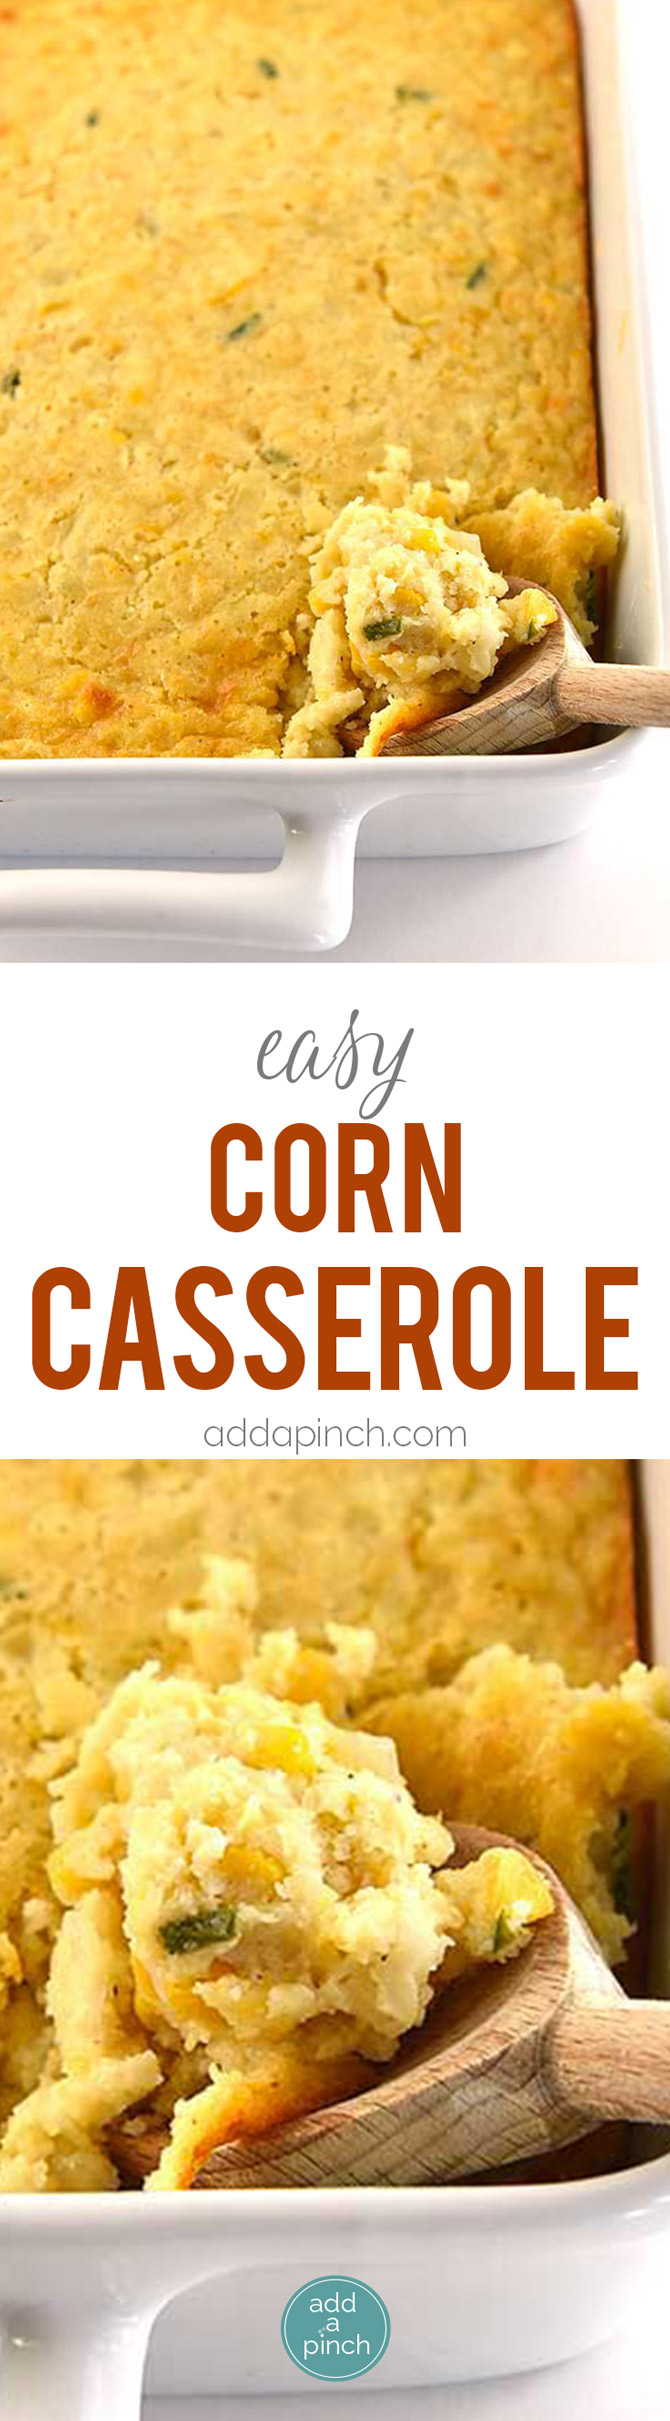 Corn Casserole Recipe - Corn casserole makes a comforting classic casserole! Made of creamed and whole corn, this corn casserole comes together quickly and makes a favorite side dish! // addapinch.com